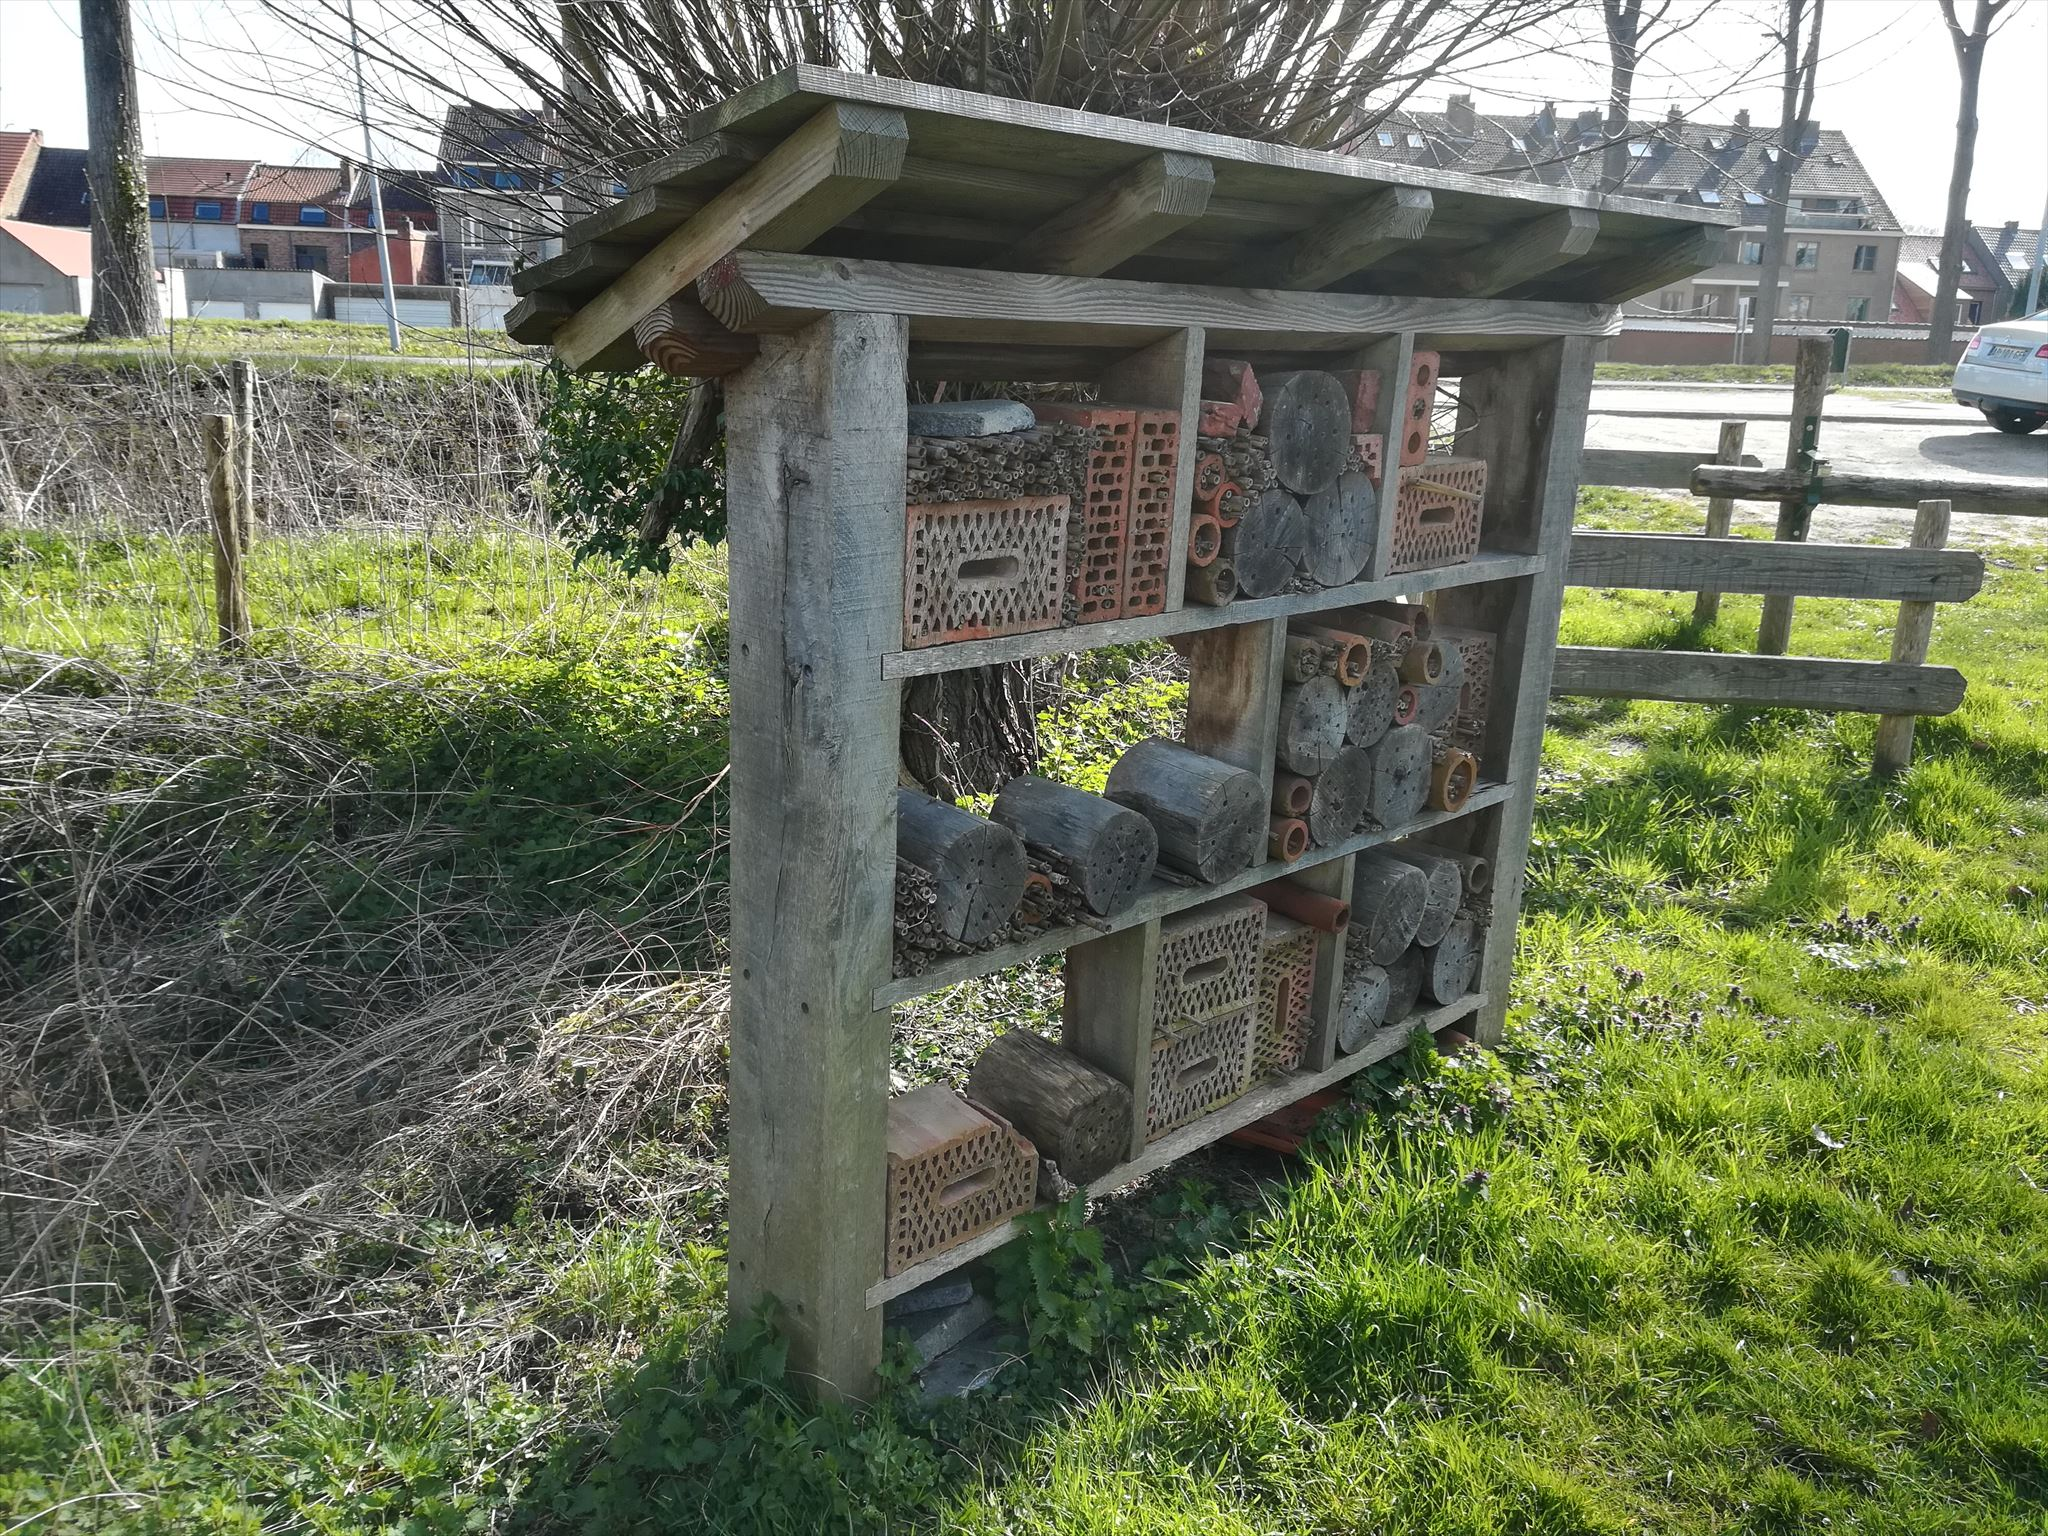 H tel insectes brugge belgium insect hotels on - Hotel a insectes ...